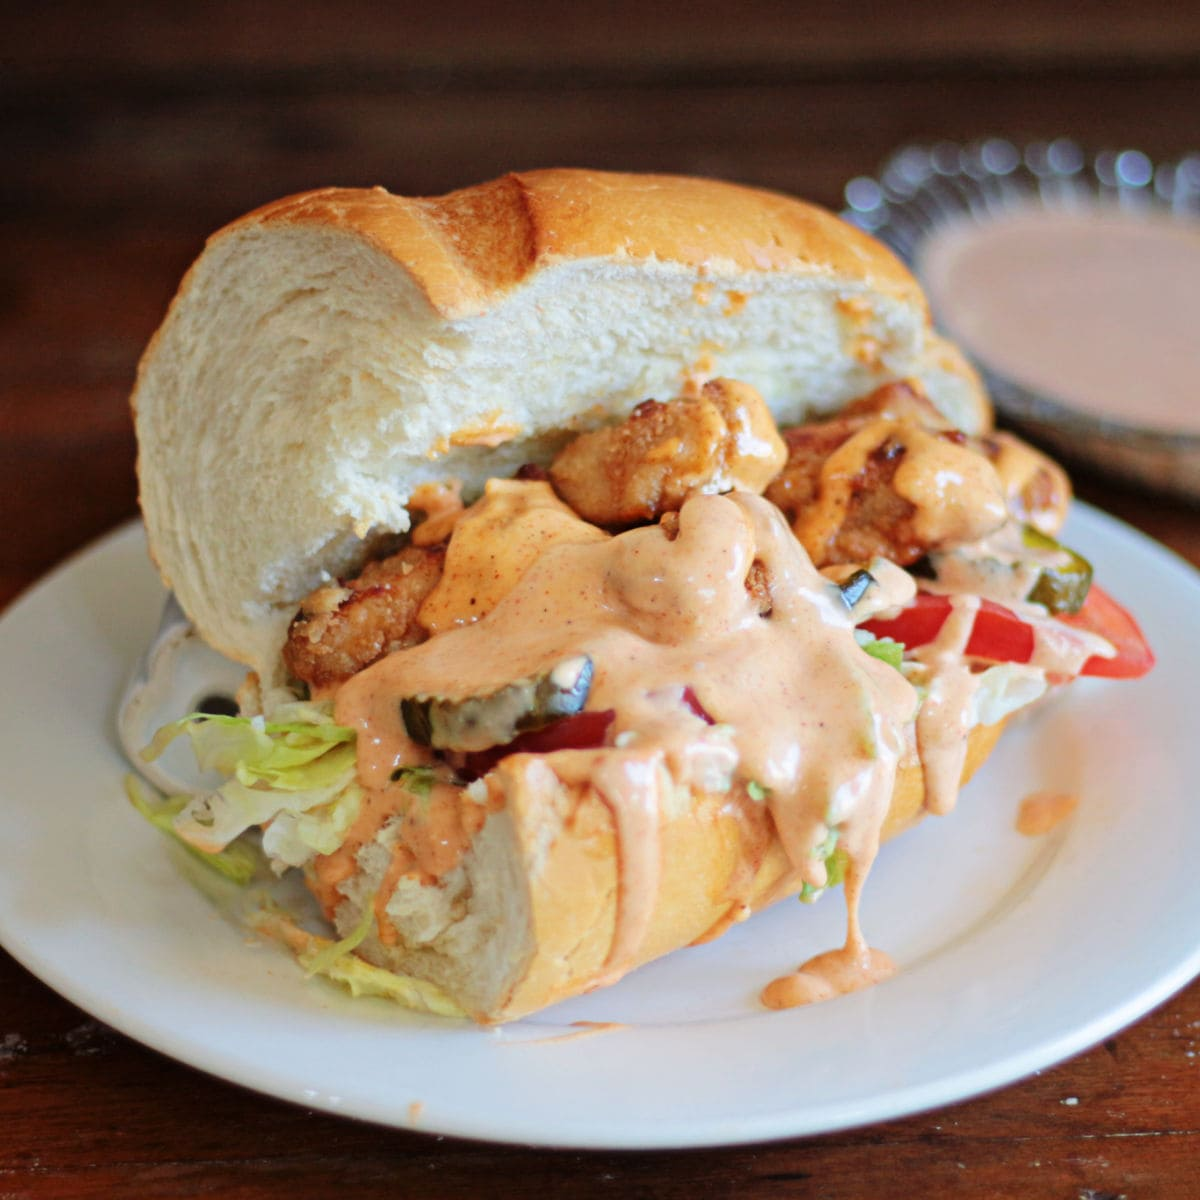 A  chicken po' boy sandwich dripping with spicy, homemade remoulade sauce.